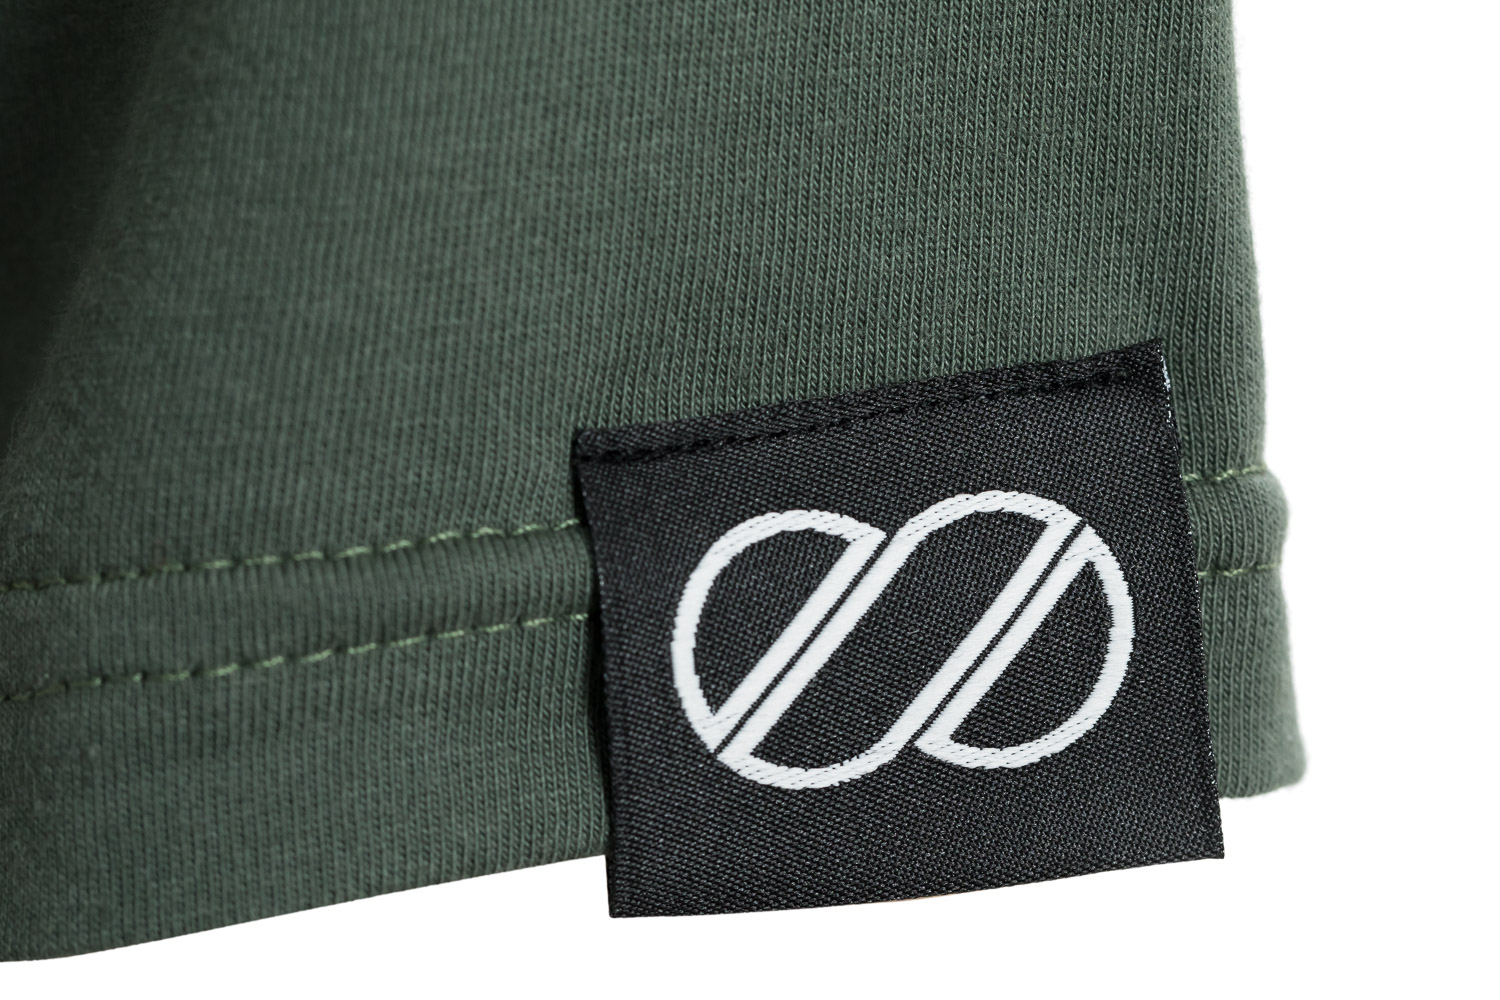 8bar-tshirt-detail-olive